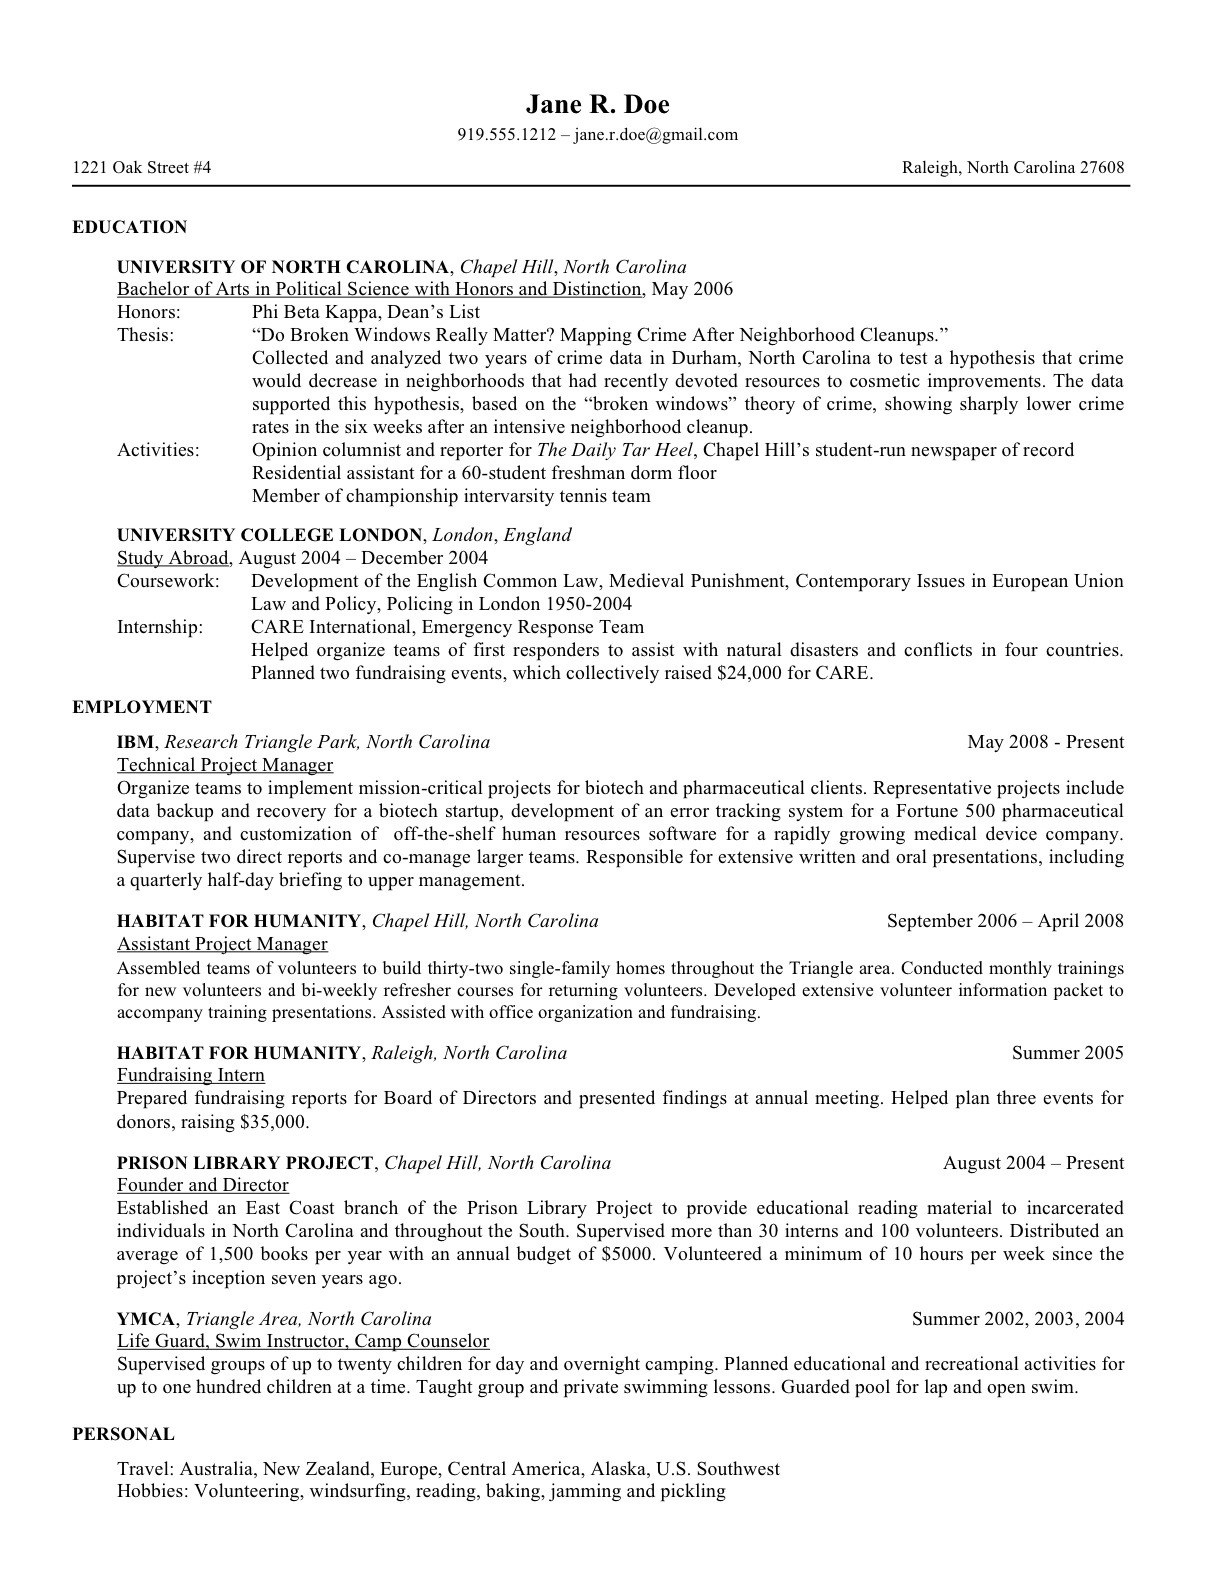 law school resume templates prepping your for of university at habitat humanity honors on Resume Habitat For Humanity Resume